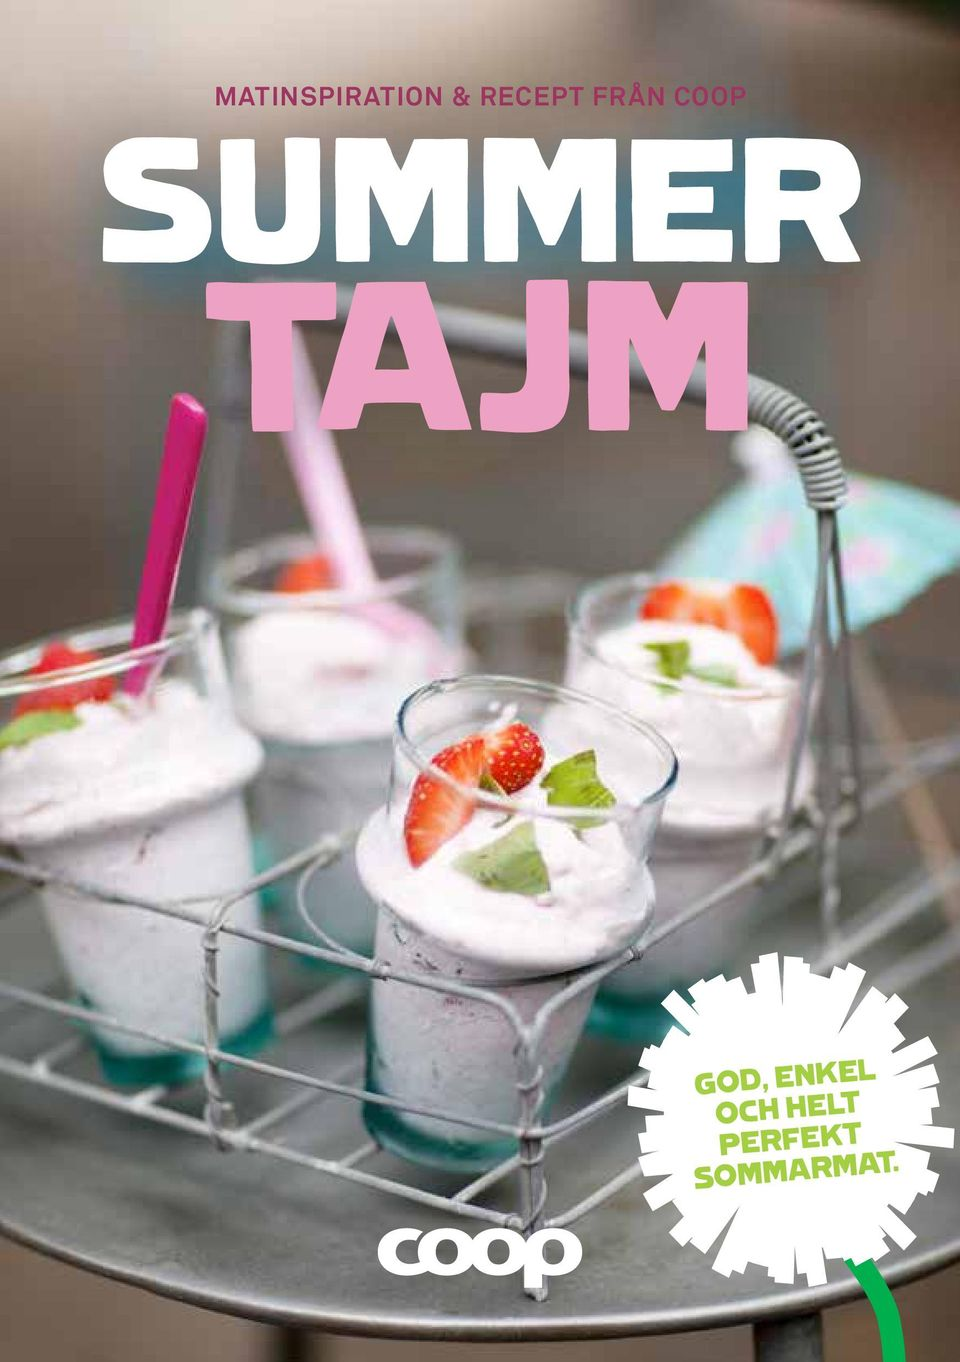 summer tajm god,